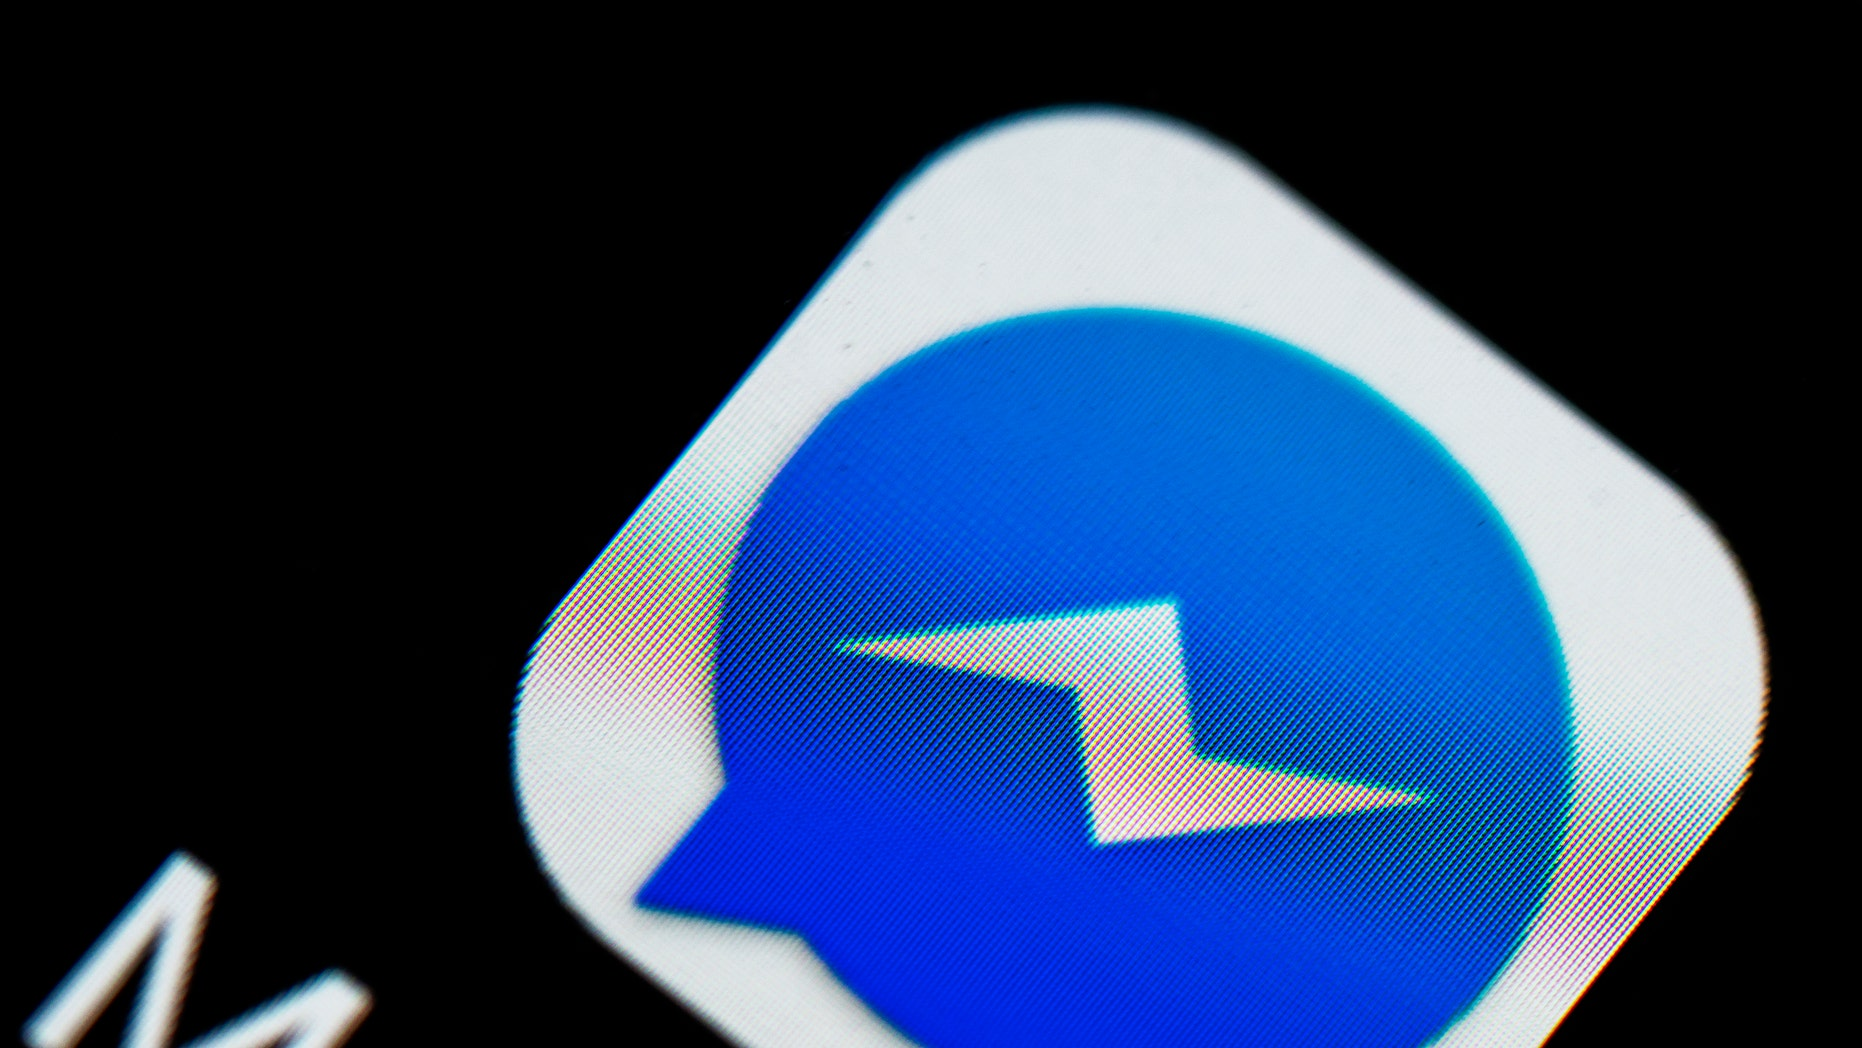 File photo - The Facebook Messenger logo seen displayed on a smartphone (Photo by Igor Golovniov/SOPA Images/LightRocket via Getty Images)